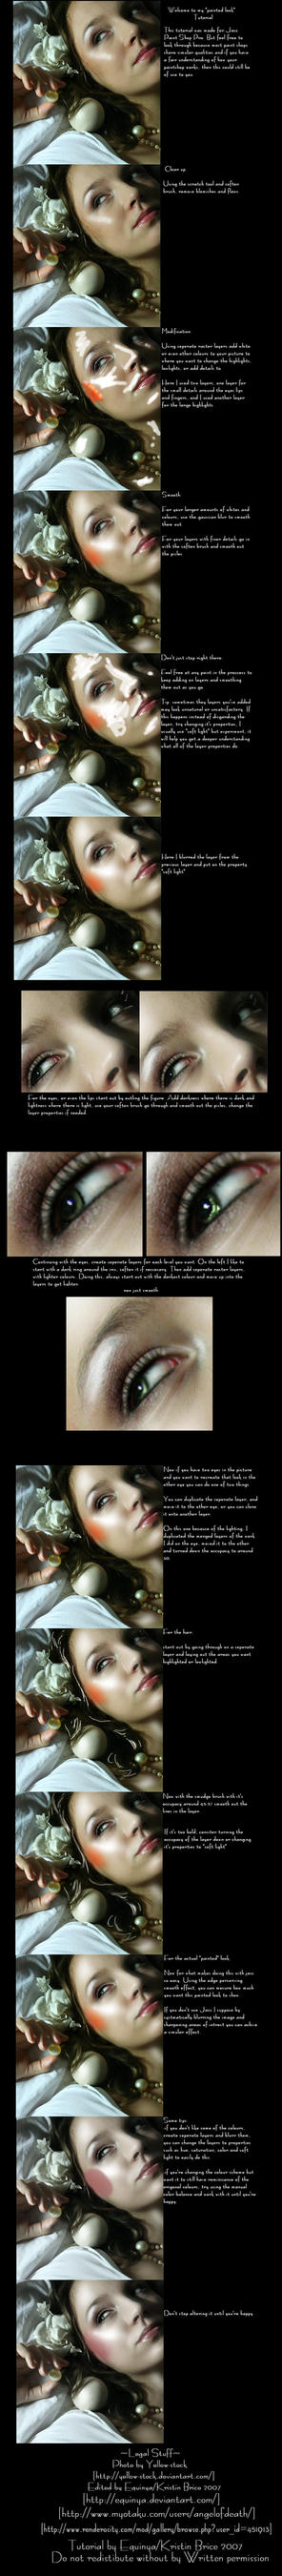 Painted Look Tutorial by Equinya